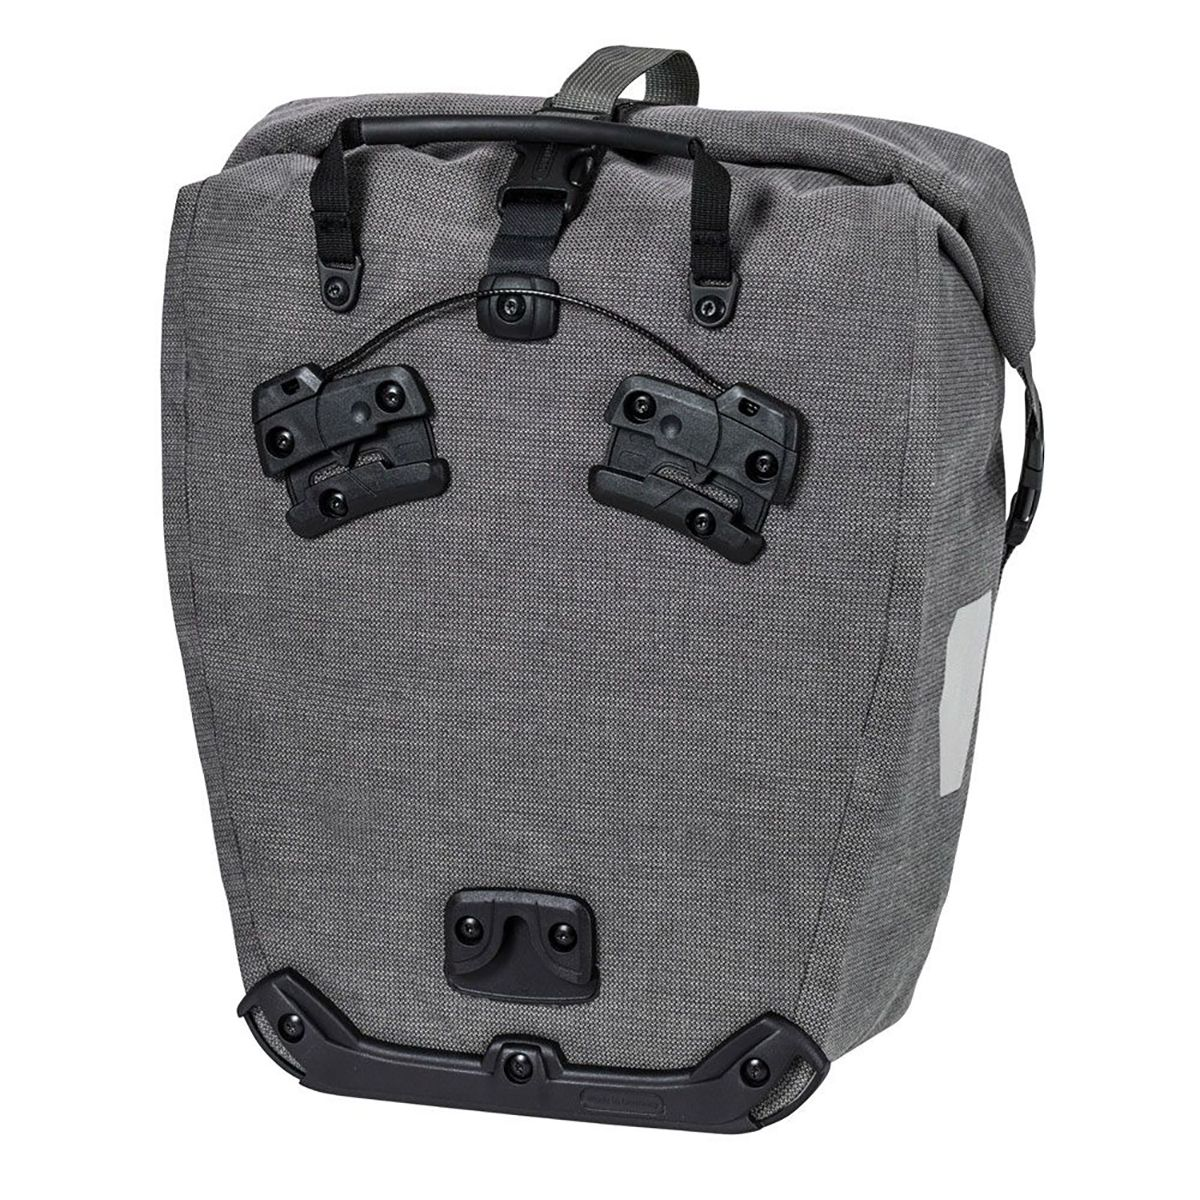 a86e52cacf60 ... pannier bag. You have already used the configurator. To see your  configuration click here.